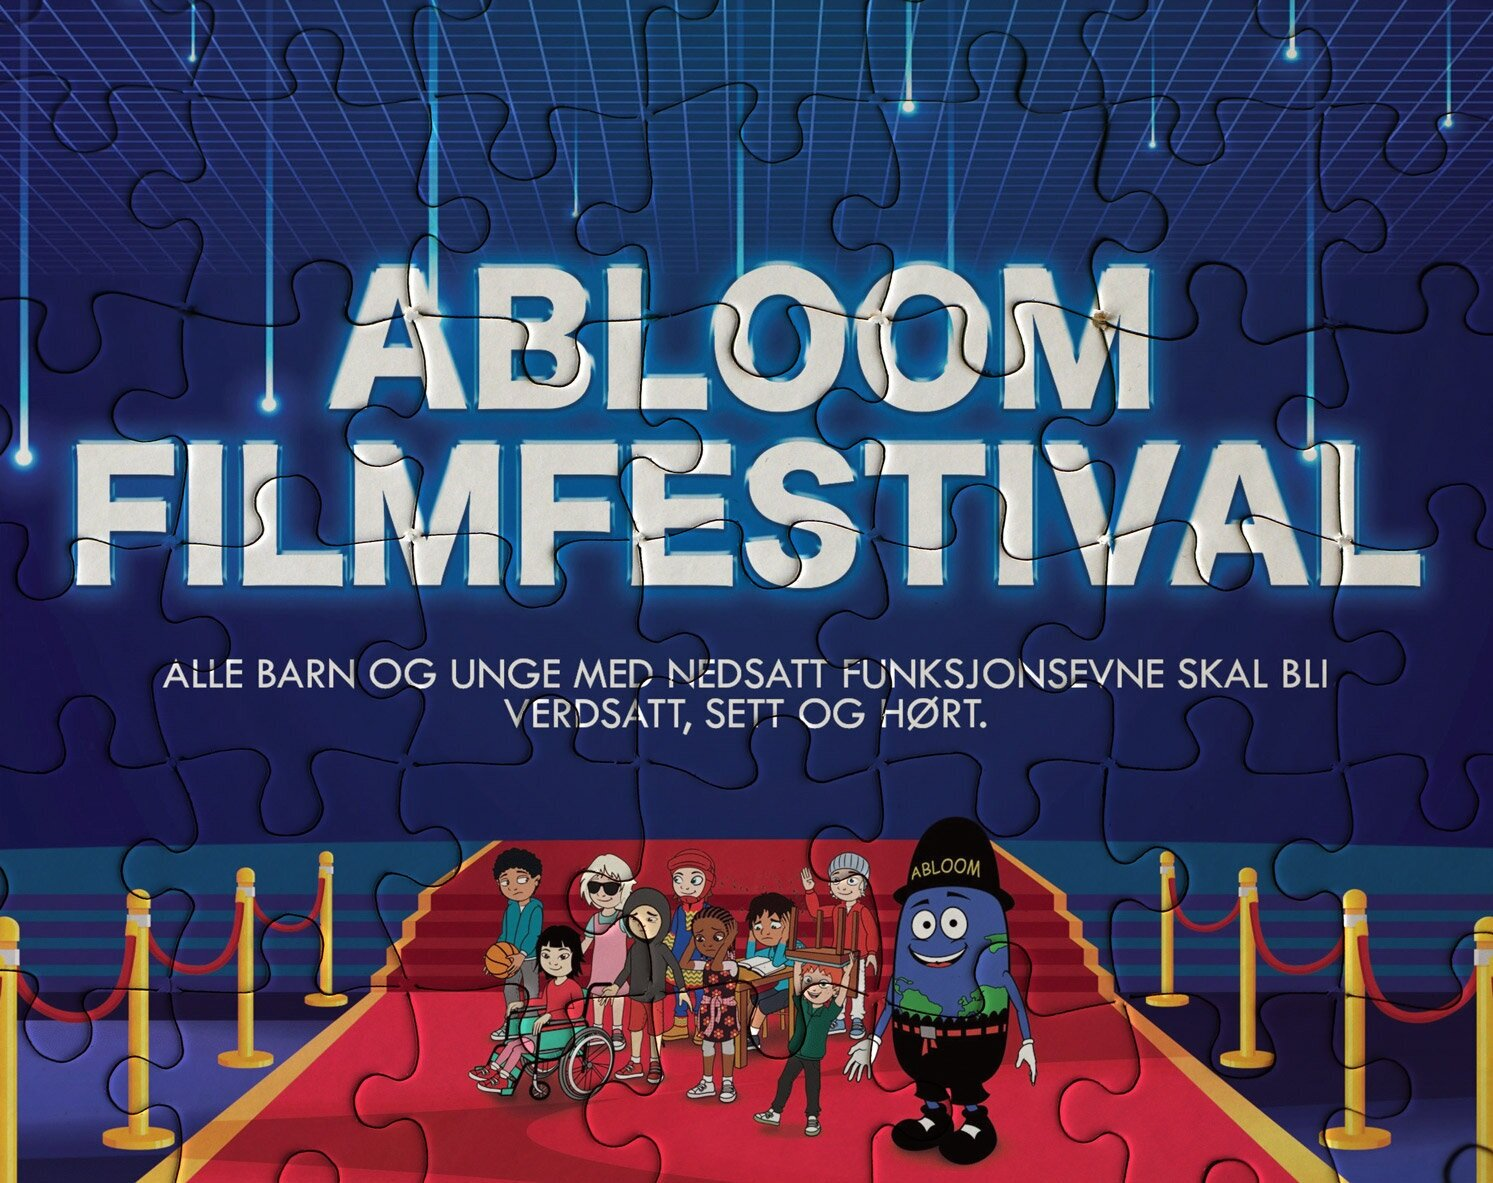 Abloom-Filmfestival-puzzle.jpg